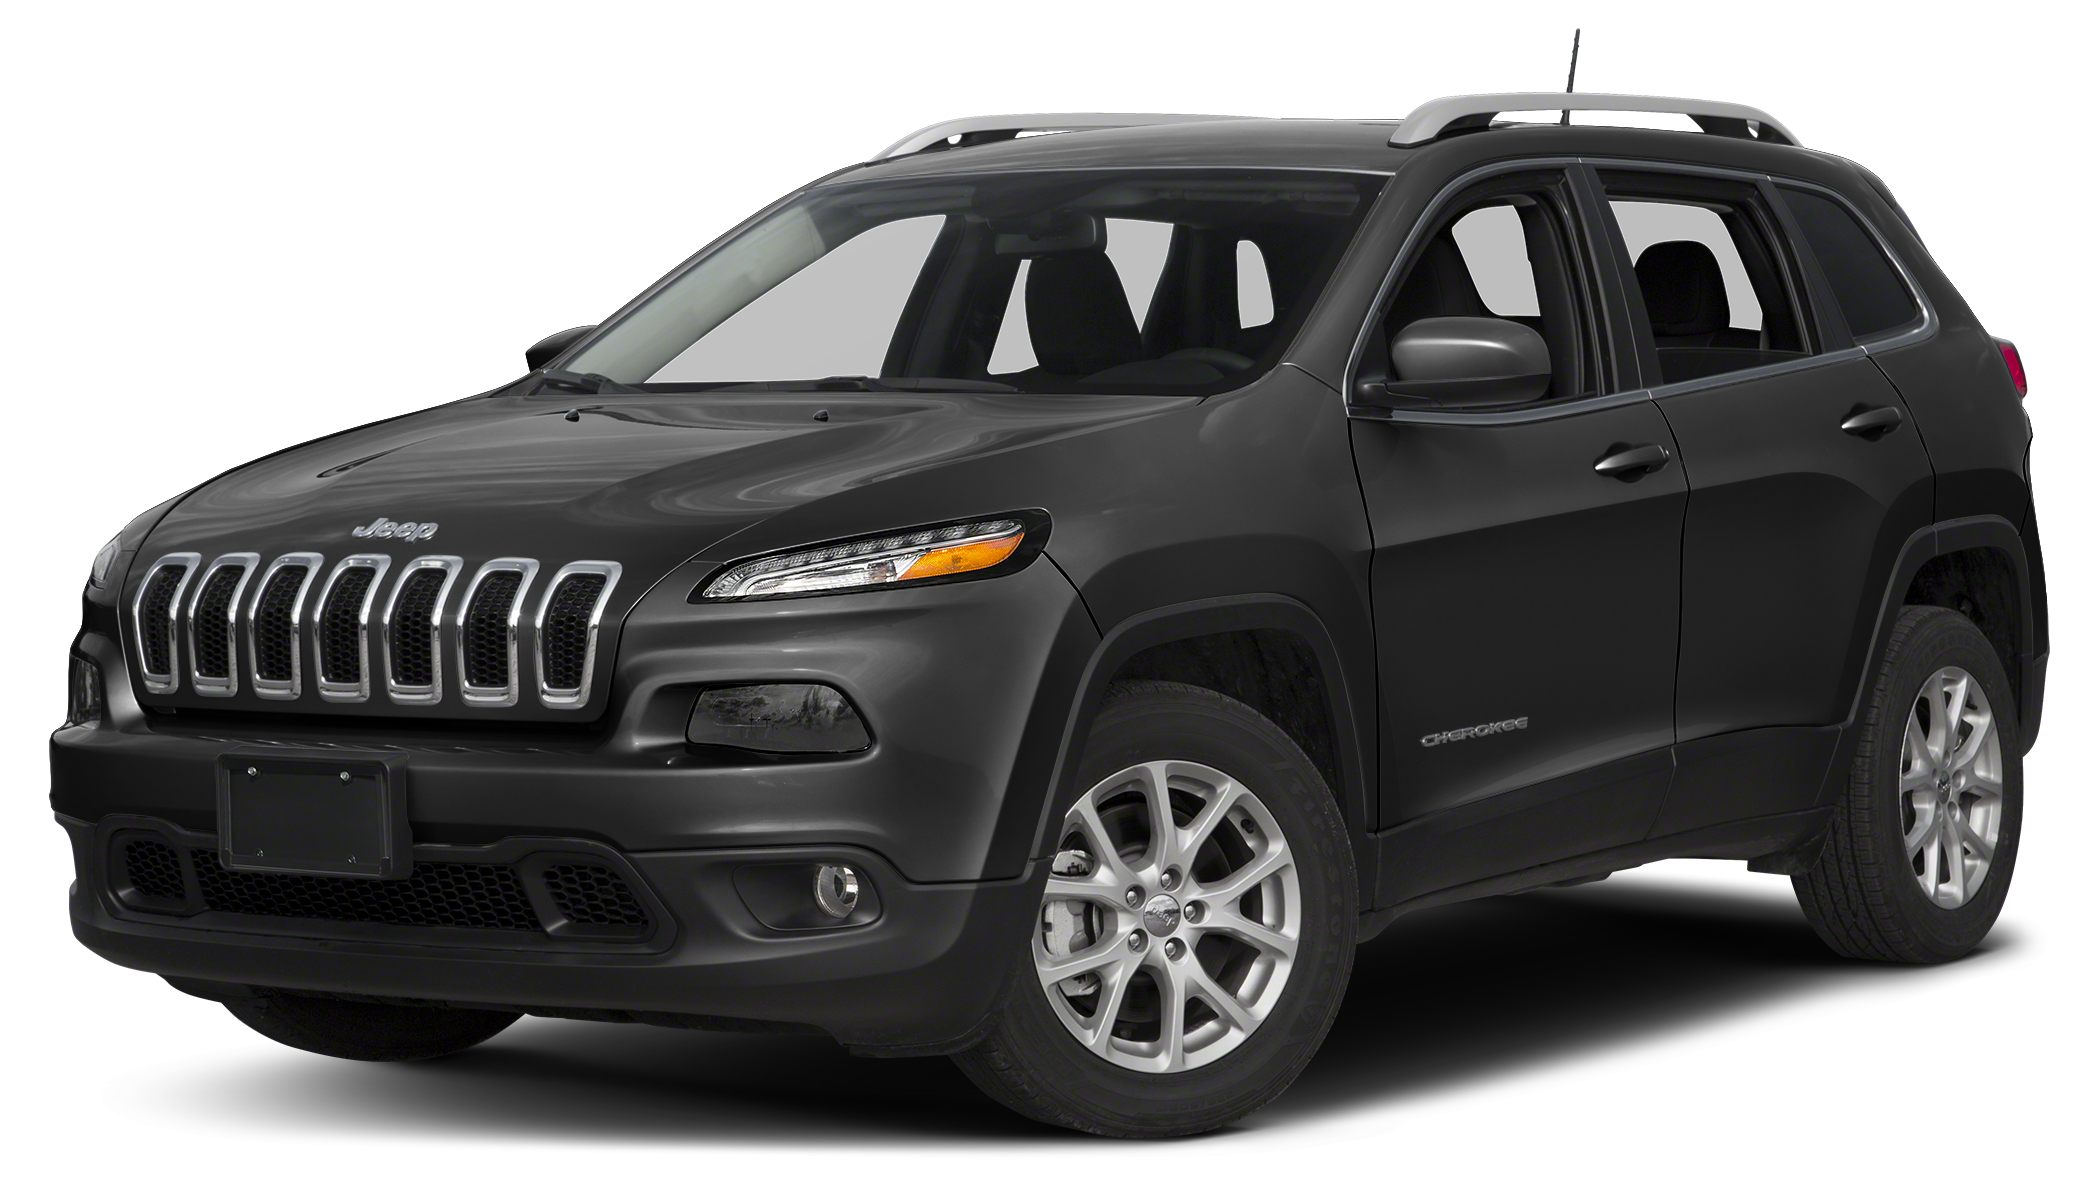 2015 Jeep Cherokee Latitude Looking for a clean well-cared for 2015 Jeep Cherokee This is itThe